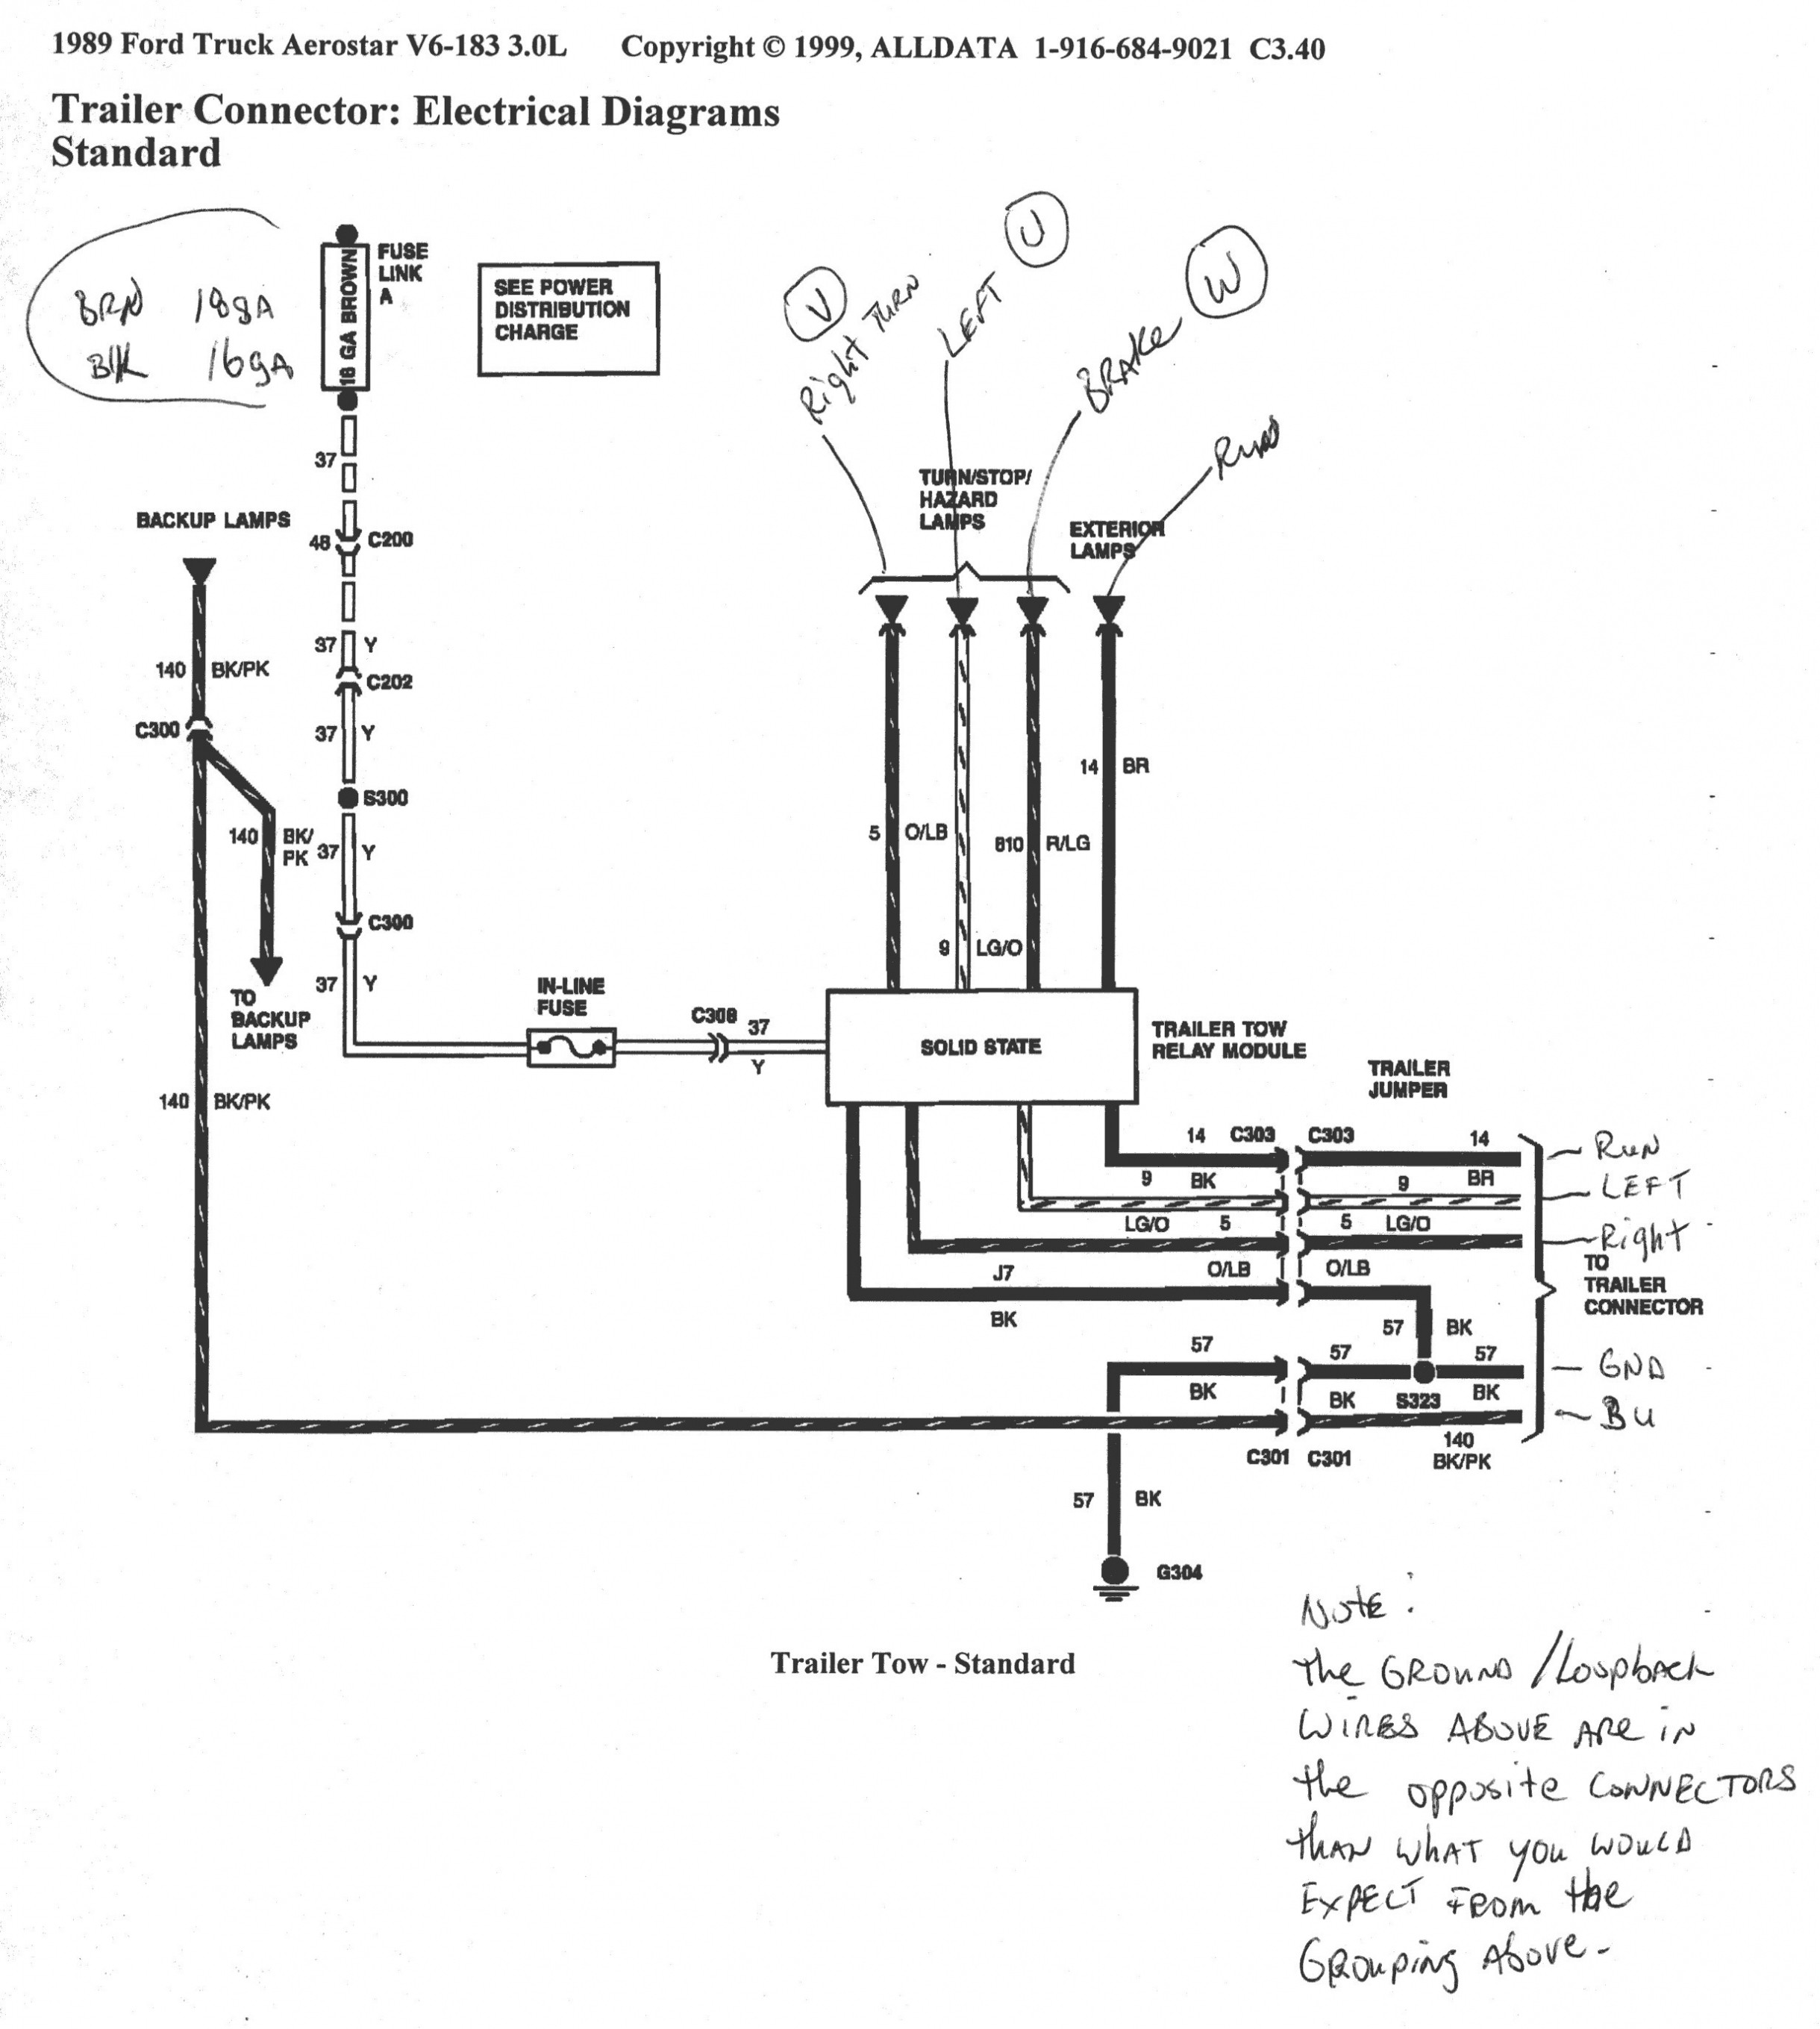 Ford Ranger Wiring Harness Diagram News 2008 ford Focus Fuse Box Diagram Spy Shots – All ford Auto Cars Of Ford Ranger Wiring Harness Diagram